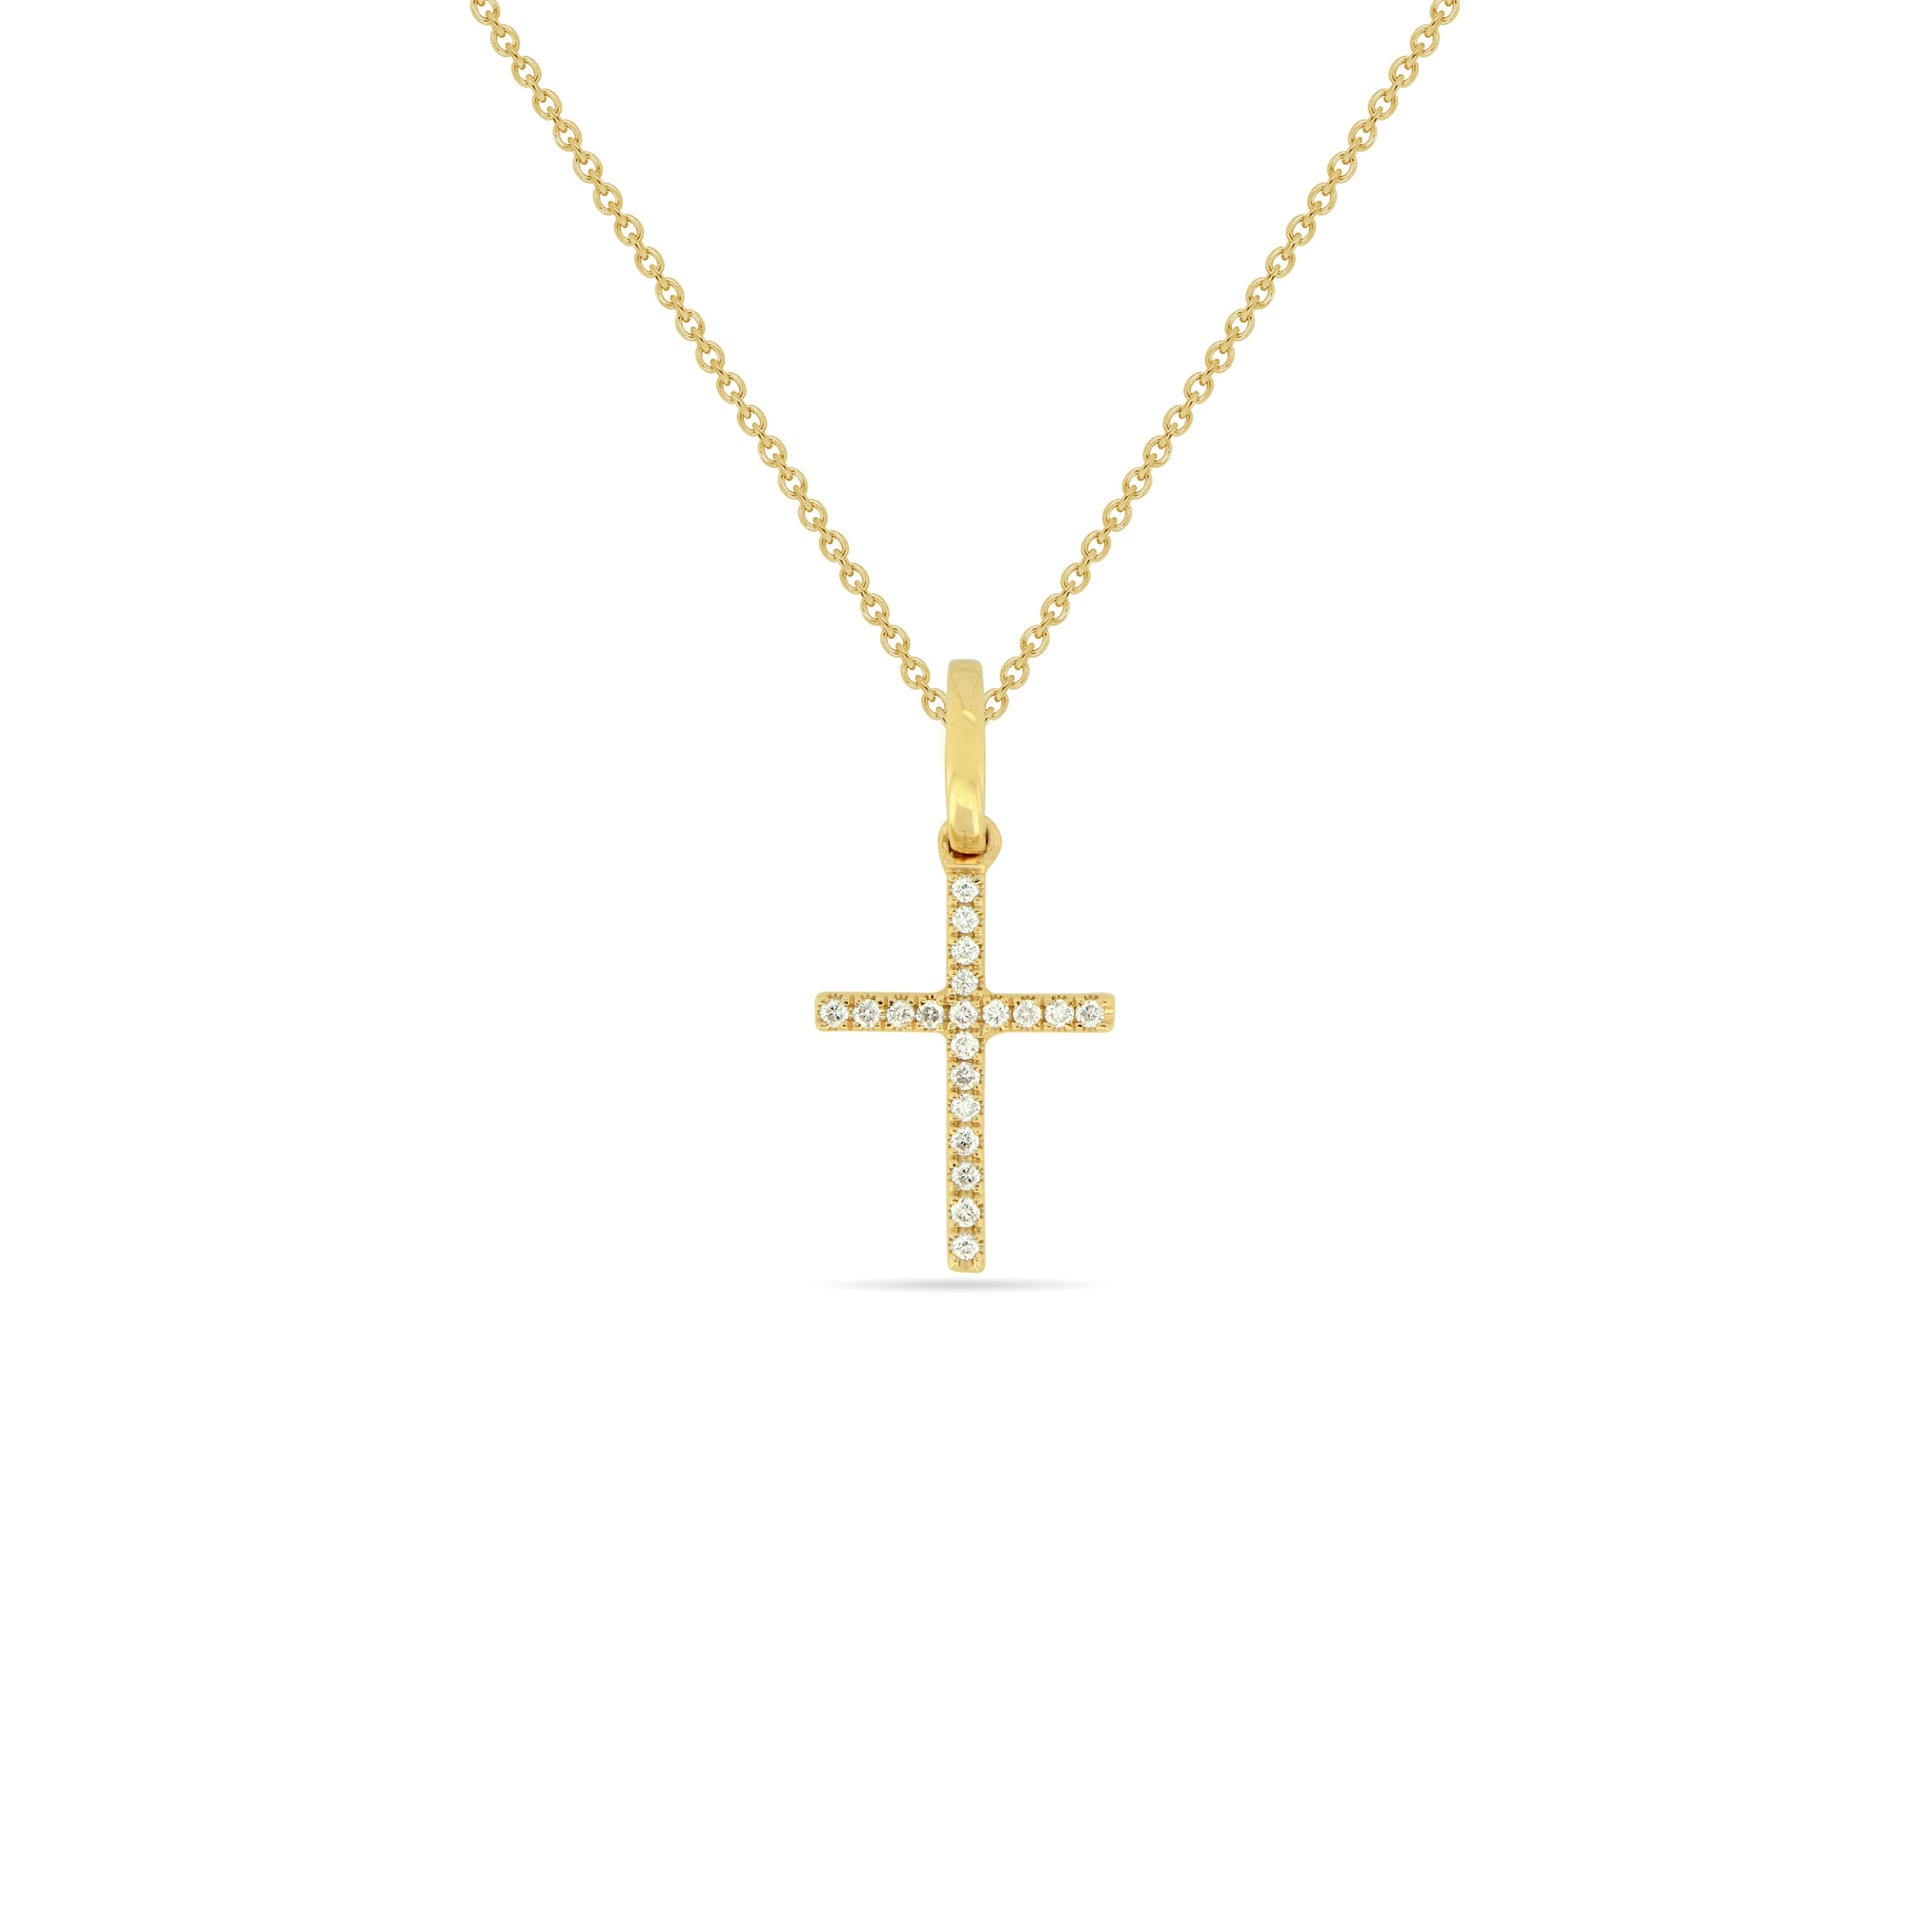 MEDIUM Cross Necklace , Necklaces - Fine Jewelry, RoCHIC, RoCHIC Designer Fine Jewelry